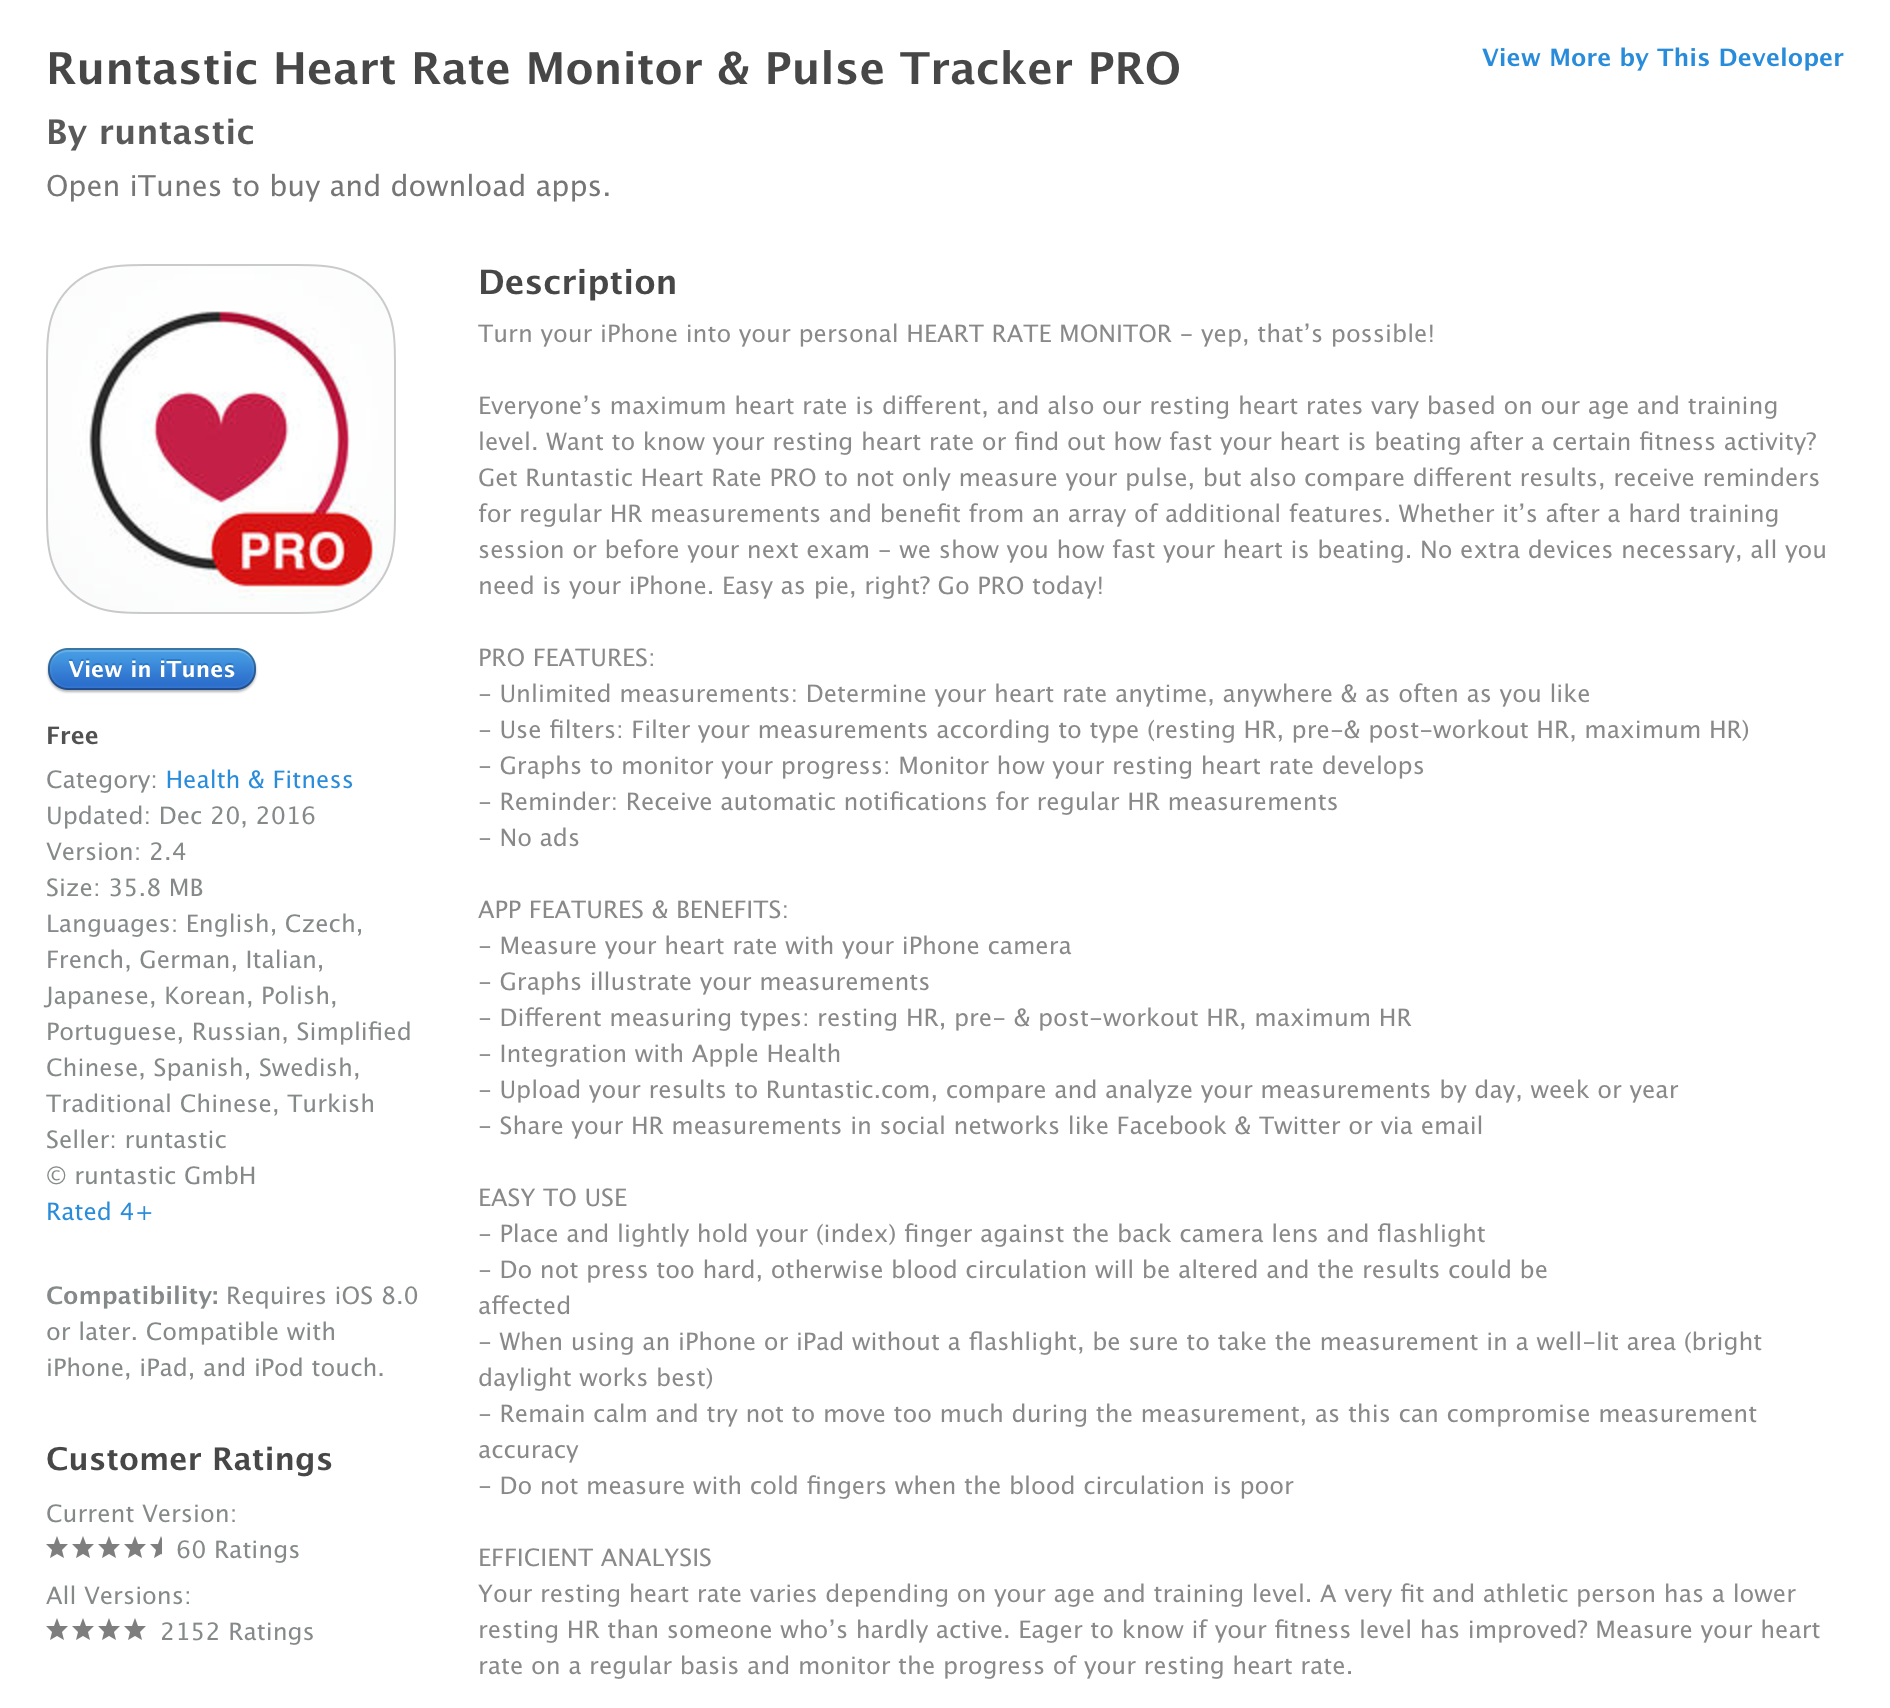 Runtastic's Heart Rate Monitor & Pulse Tracker PRO on iOS is